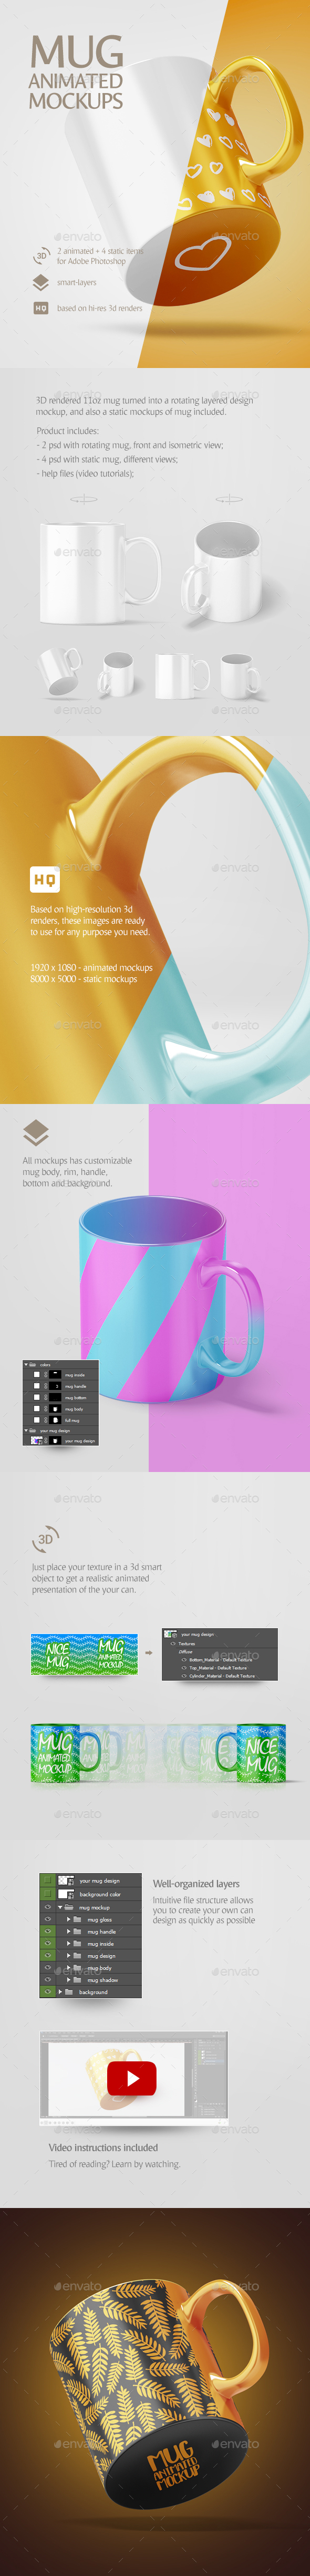 Mug Animated Mockup - Stationery Print